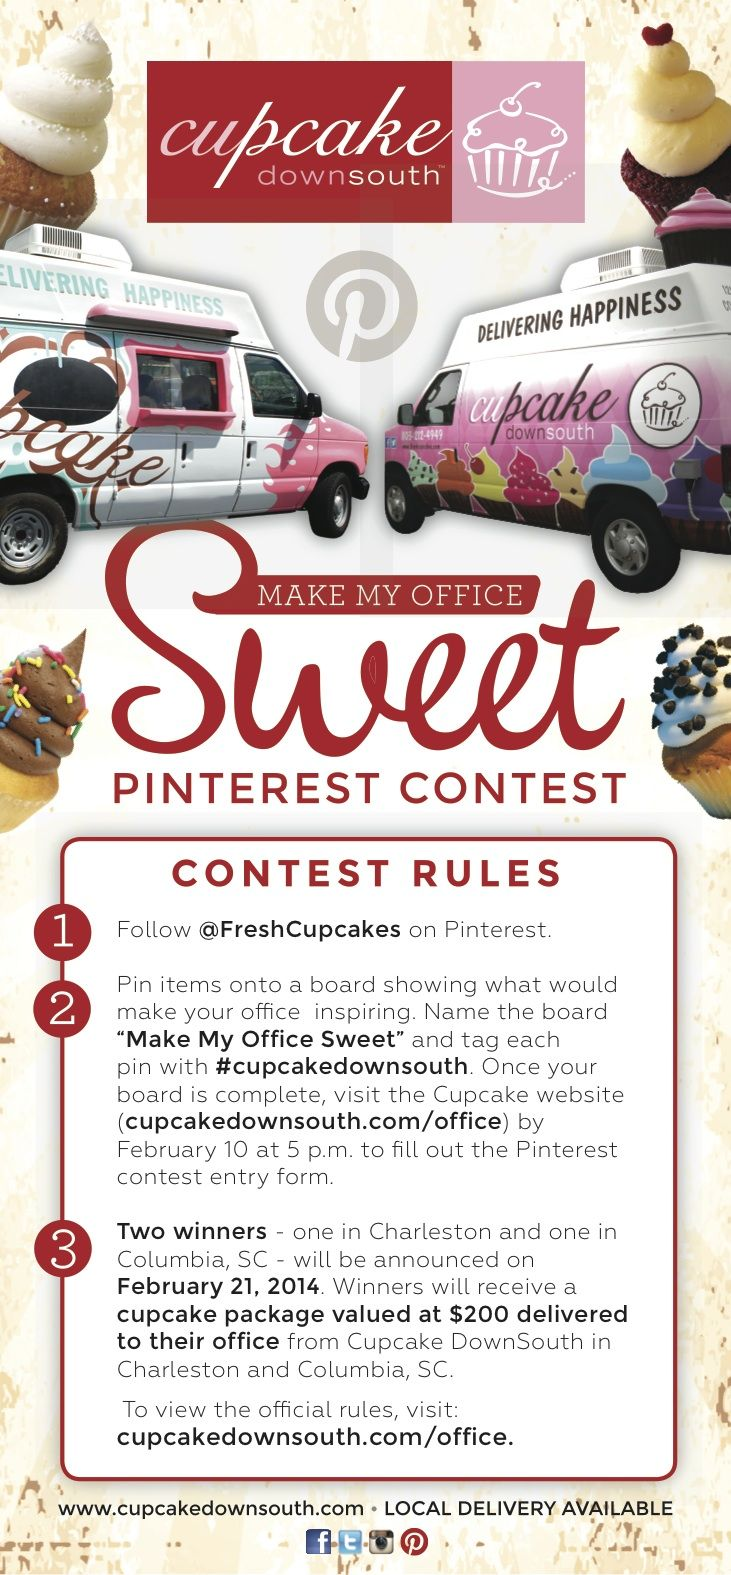 2. Pin items showing what would make your . Once your board is complete, visit the Cupcake website (cupcakedownsouth.com/office) by February 10 at 5 p.m. to fill out the entry form. Two winners (one in Charleston & one in Columbia) will be announced on February 21. 3. Winners will receive a cupcake package valued at $200 delivered to their office from Cupcake DownSouth.